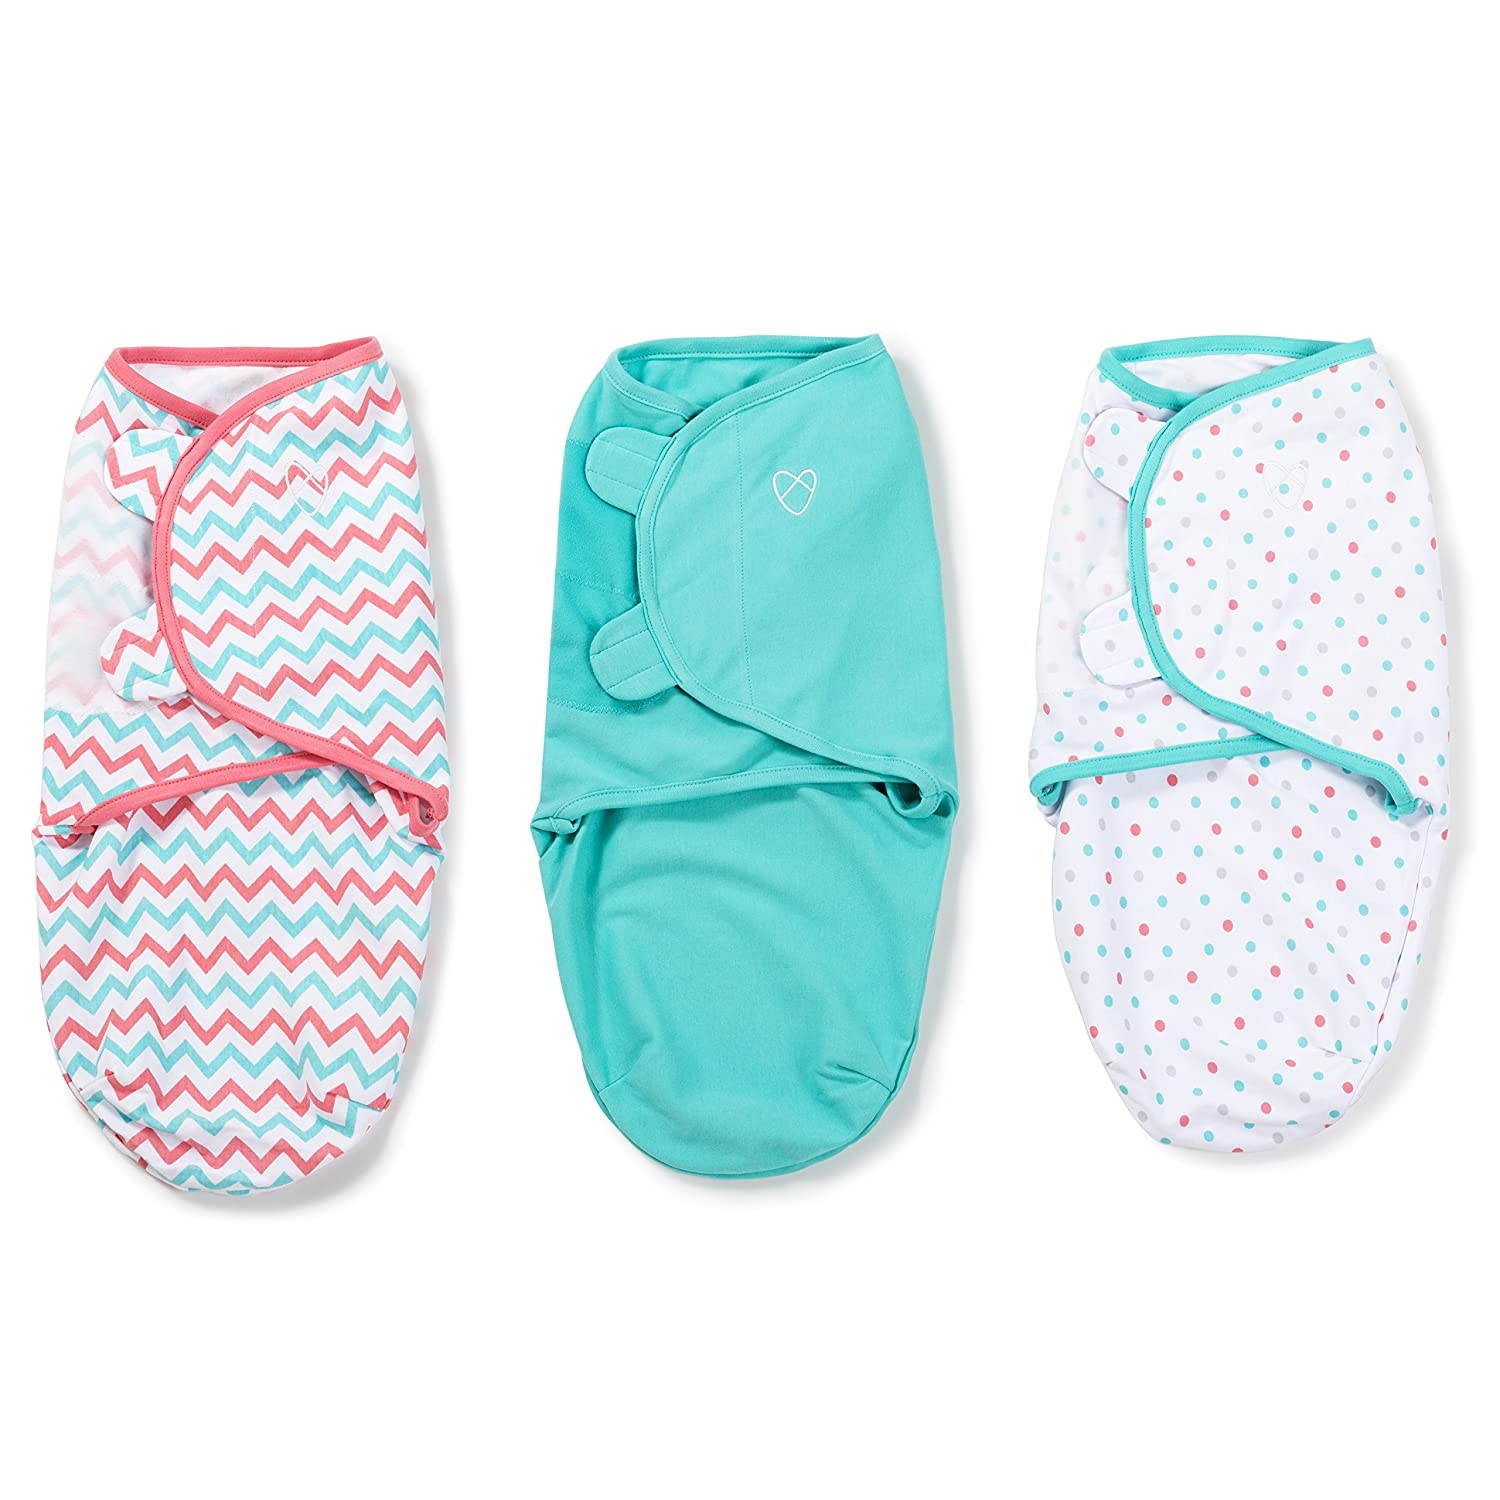 SwaddleMe Original Swaddle (Small, Zig Zag Multi, Teal and Dot, Pack of 3) 87256